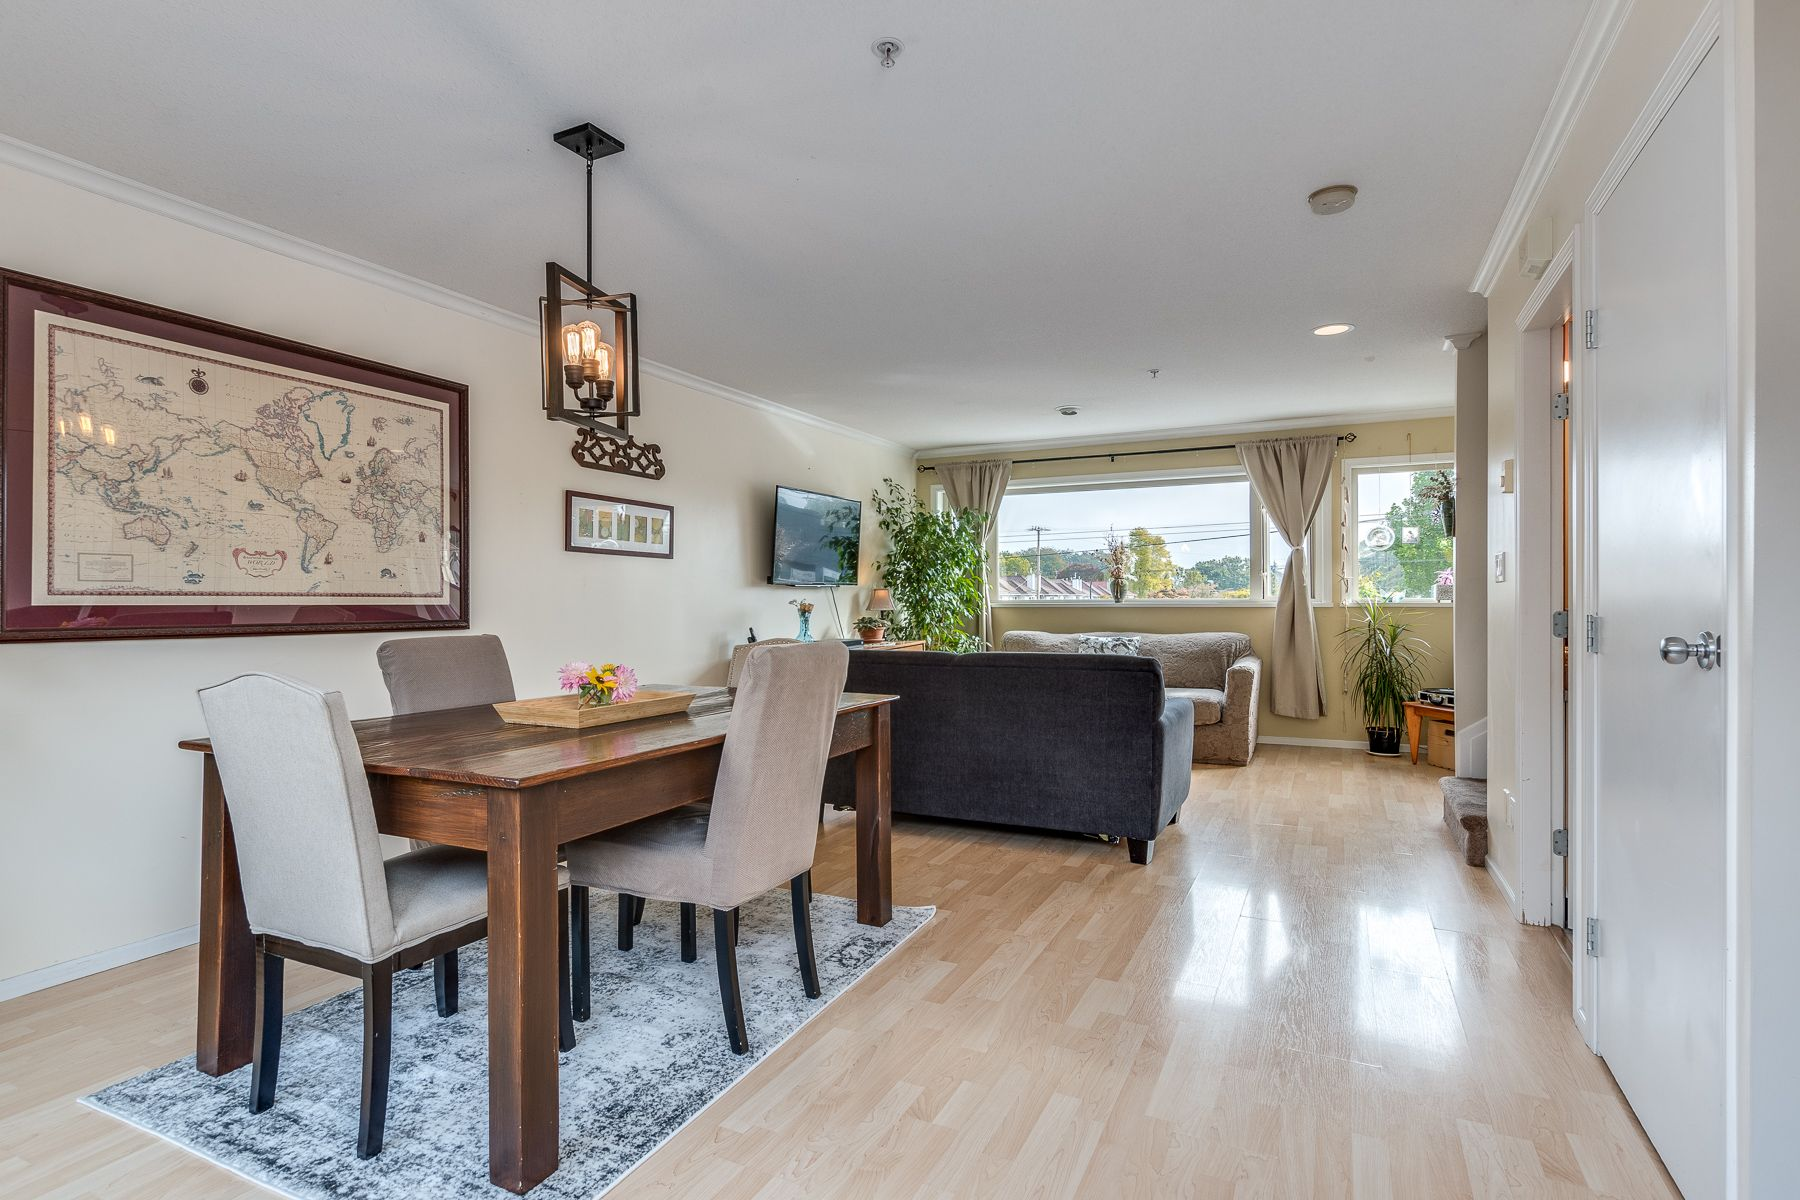 Photo 6: Photos: 7-2389 Charles St in Vancouver: Grandview Woodland Townhouse for sale (Vancouver East)